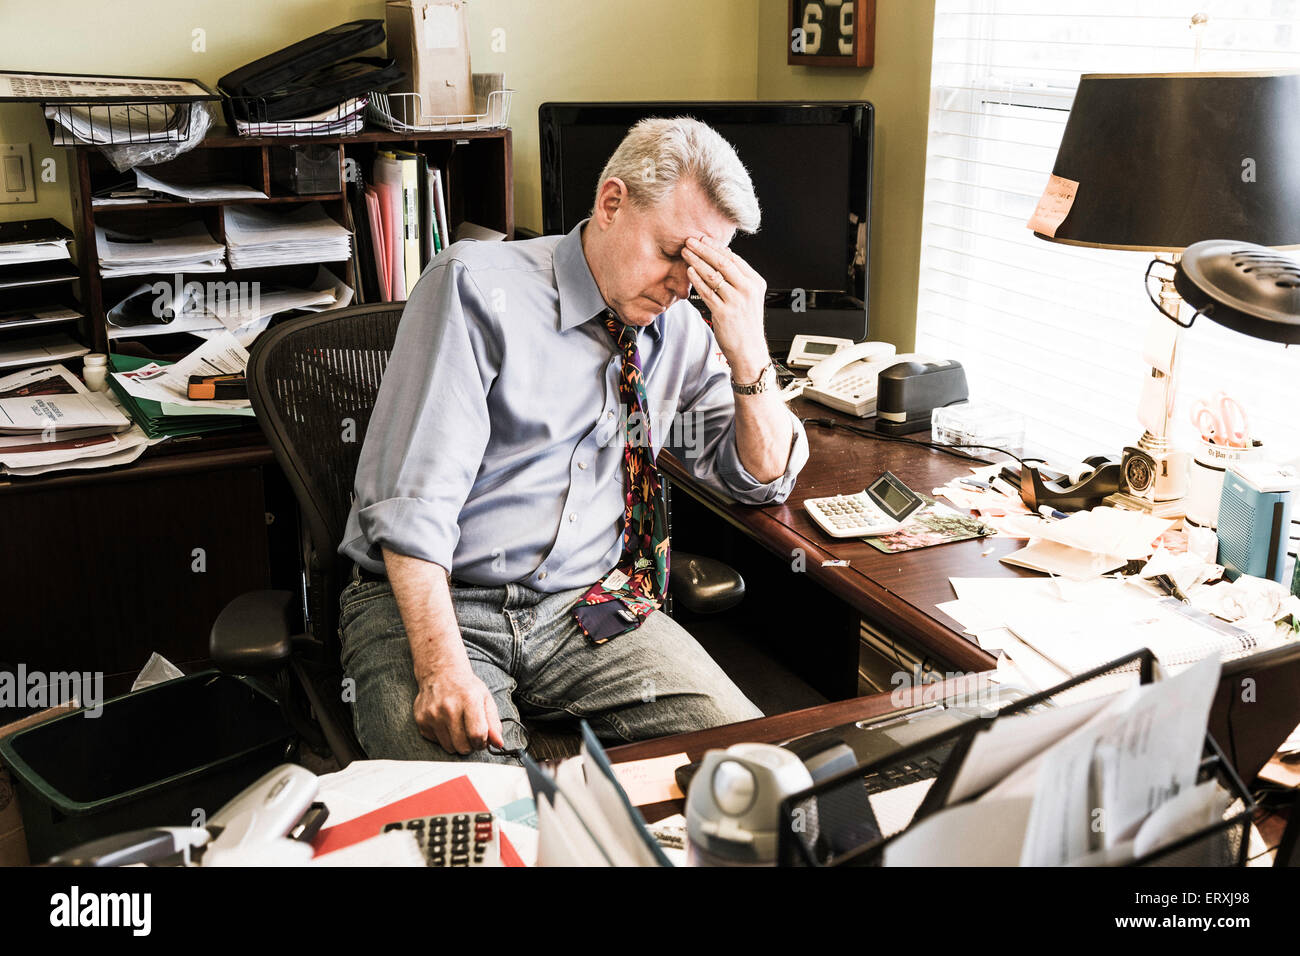 Businessman in Messy Home Office, USA Stock Photo, Royalty ...